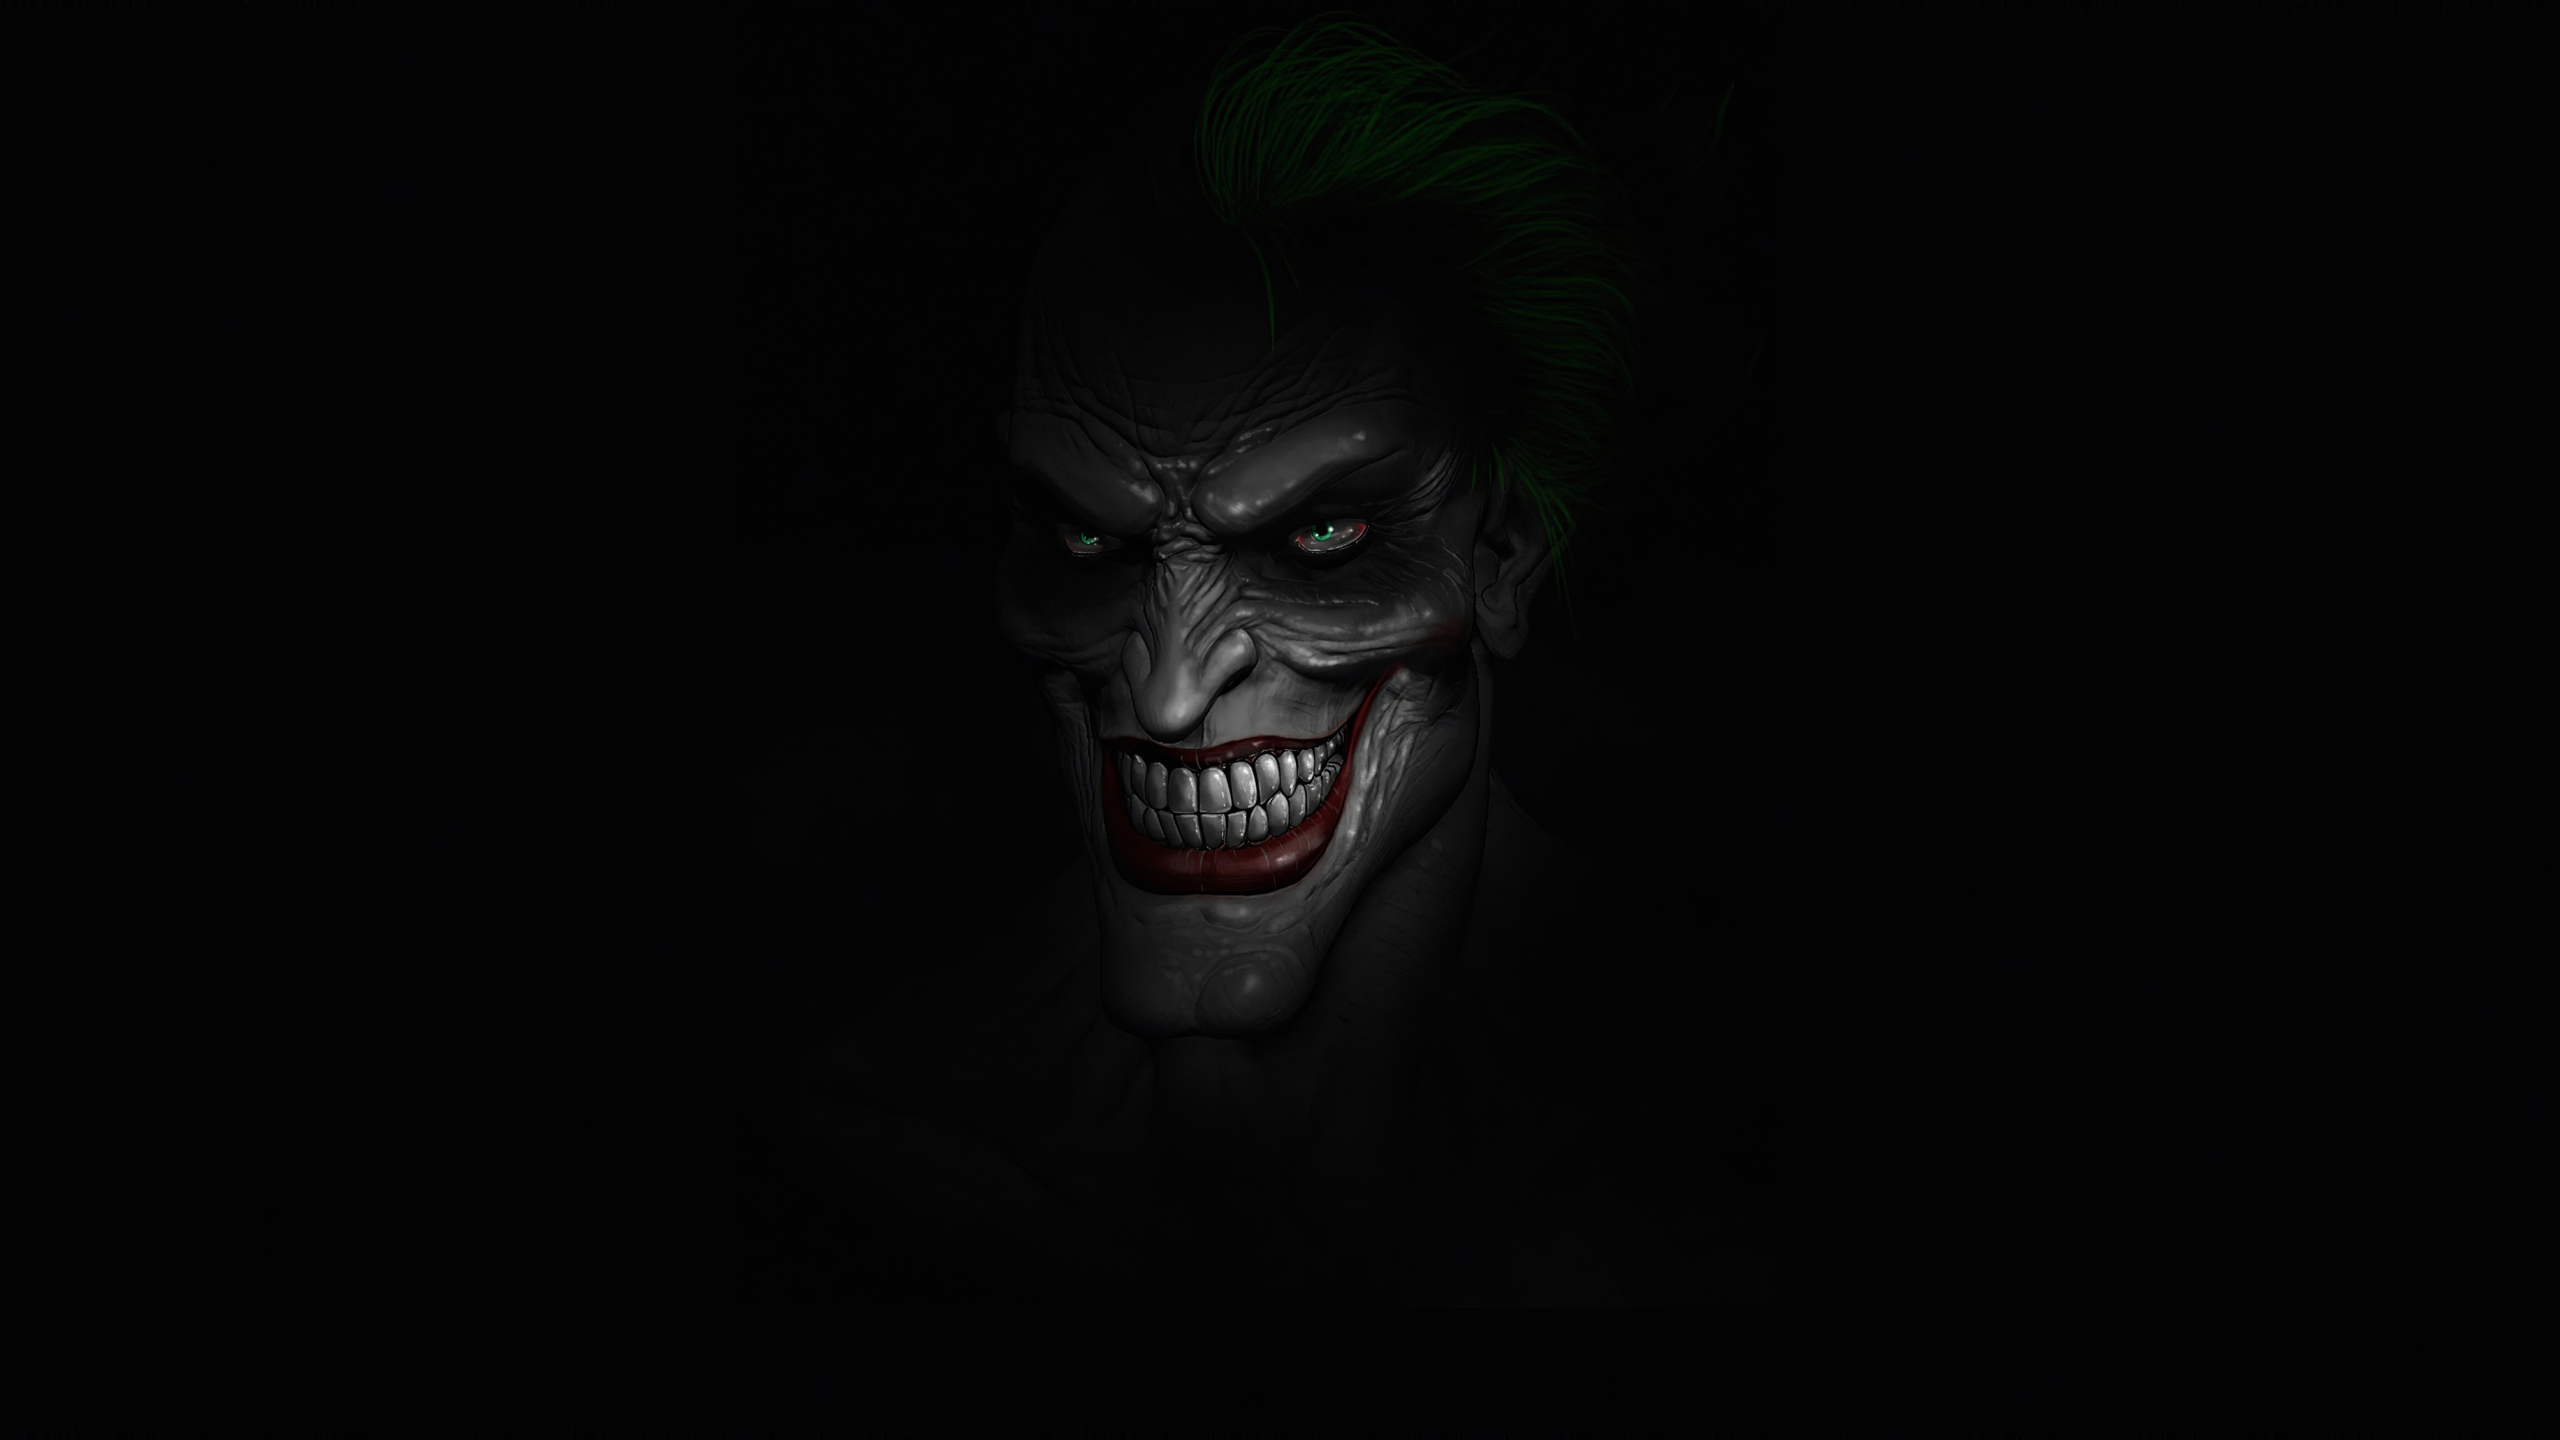 2560x1440 Scary Joker Minimal 4K 1440P Resolution ...